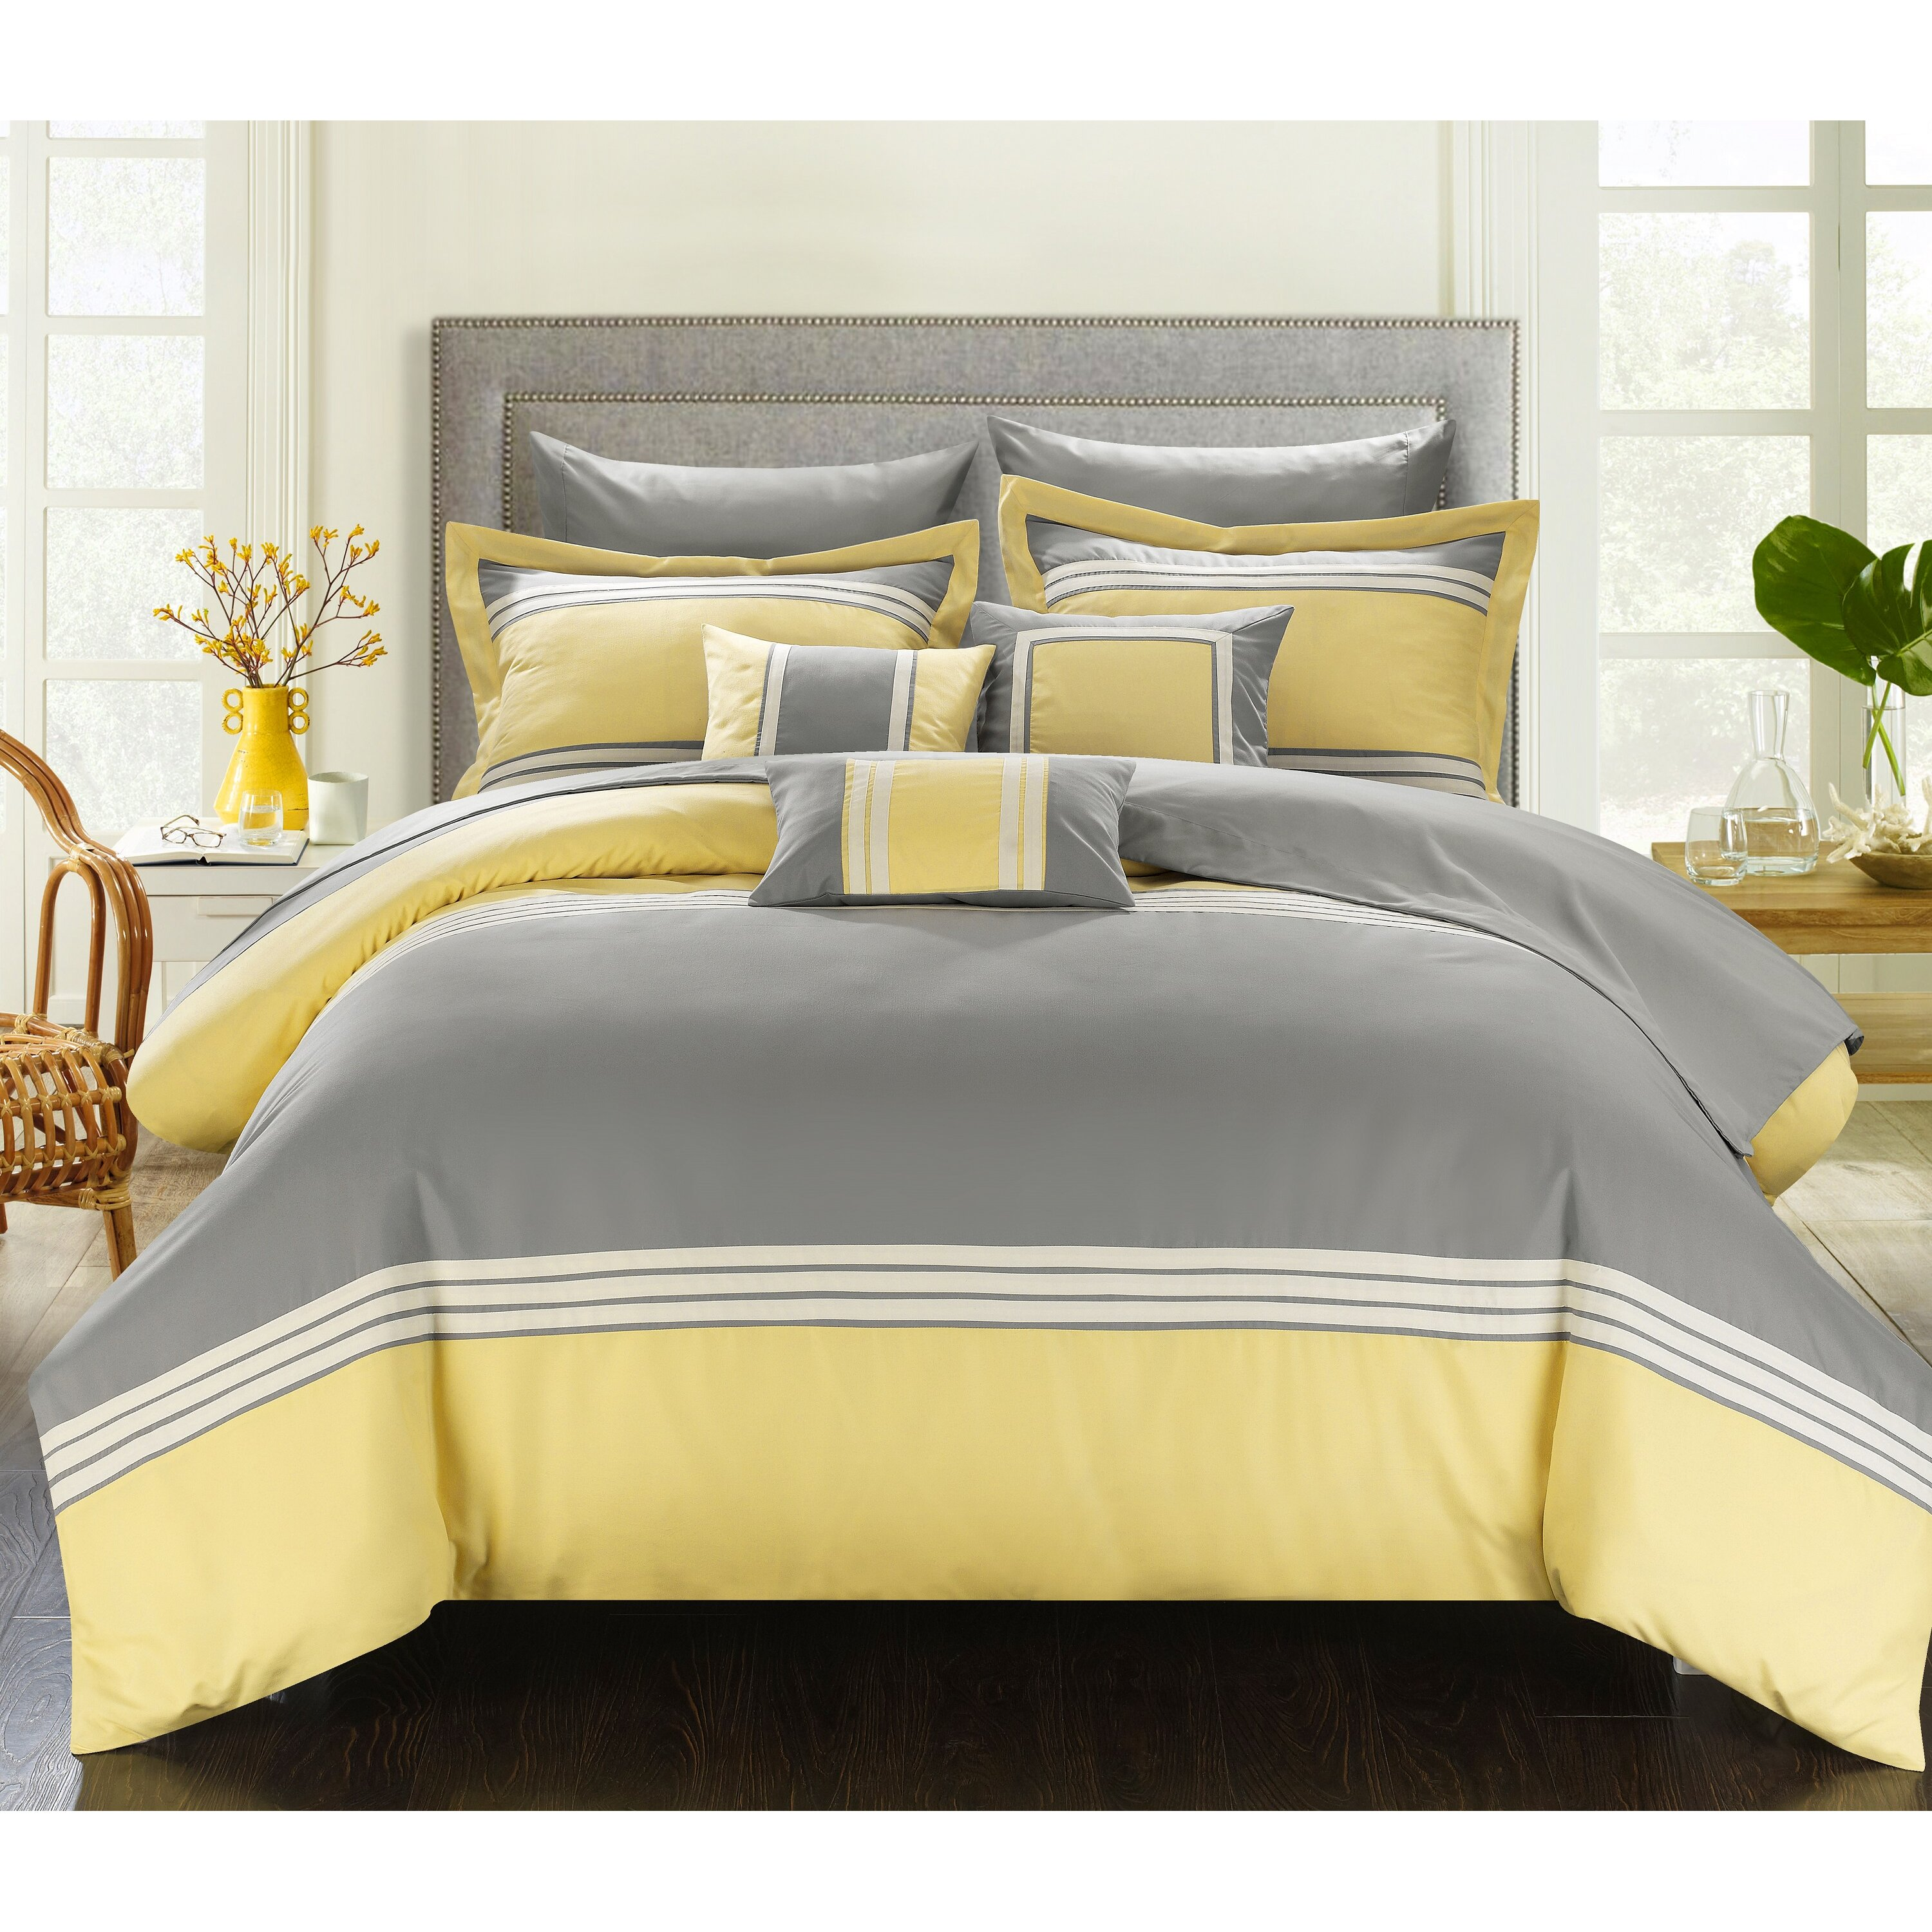 Reviews On Hotel Collection Bedding: Chic Home Falcon Hotel 8 Piece Twin Bed-In-A-Bag & Reviews